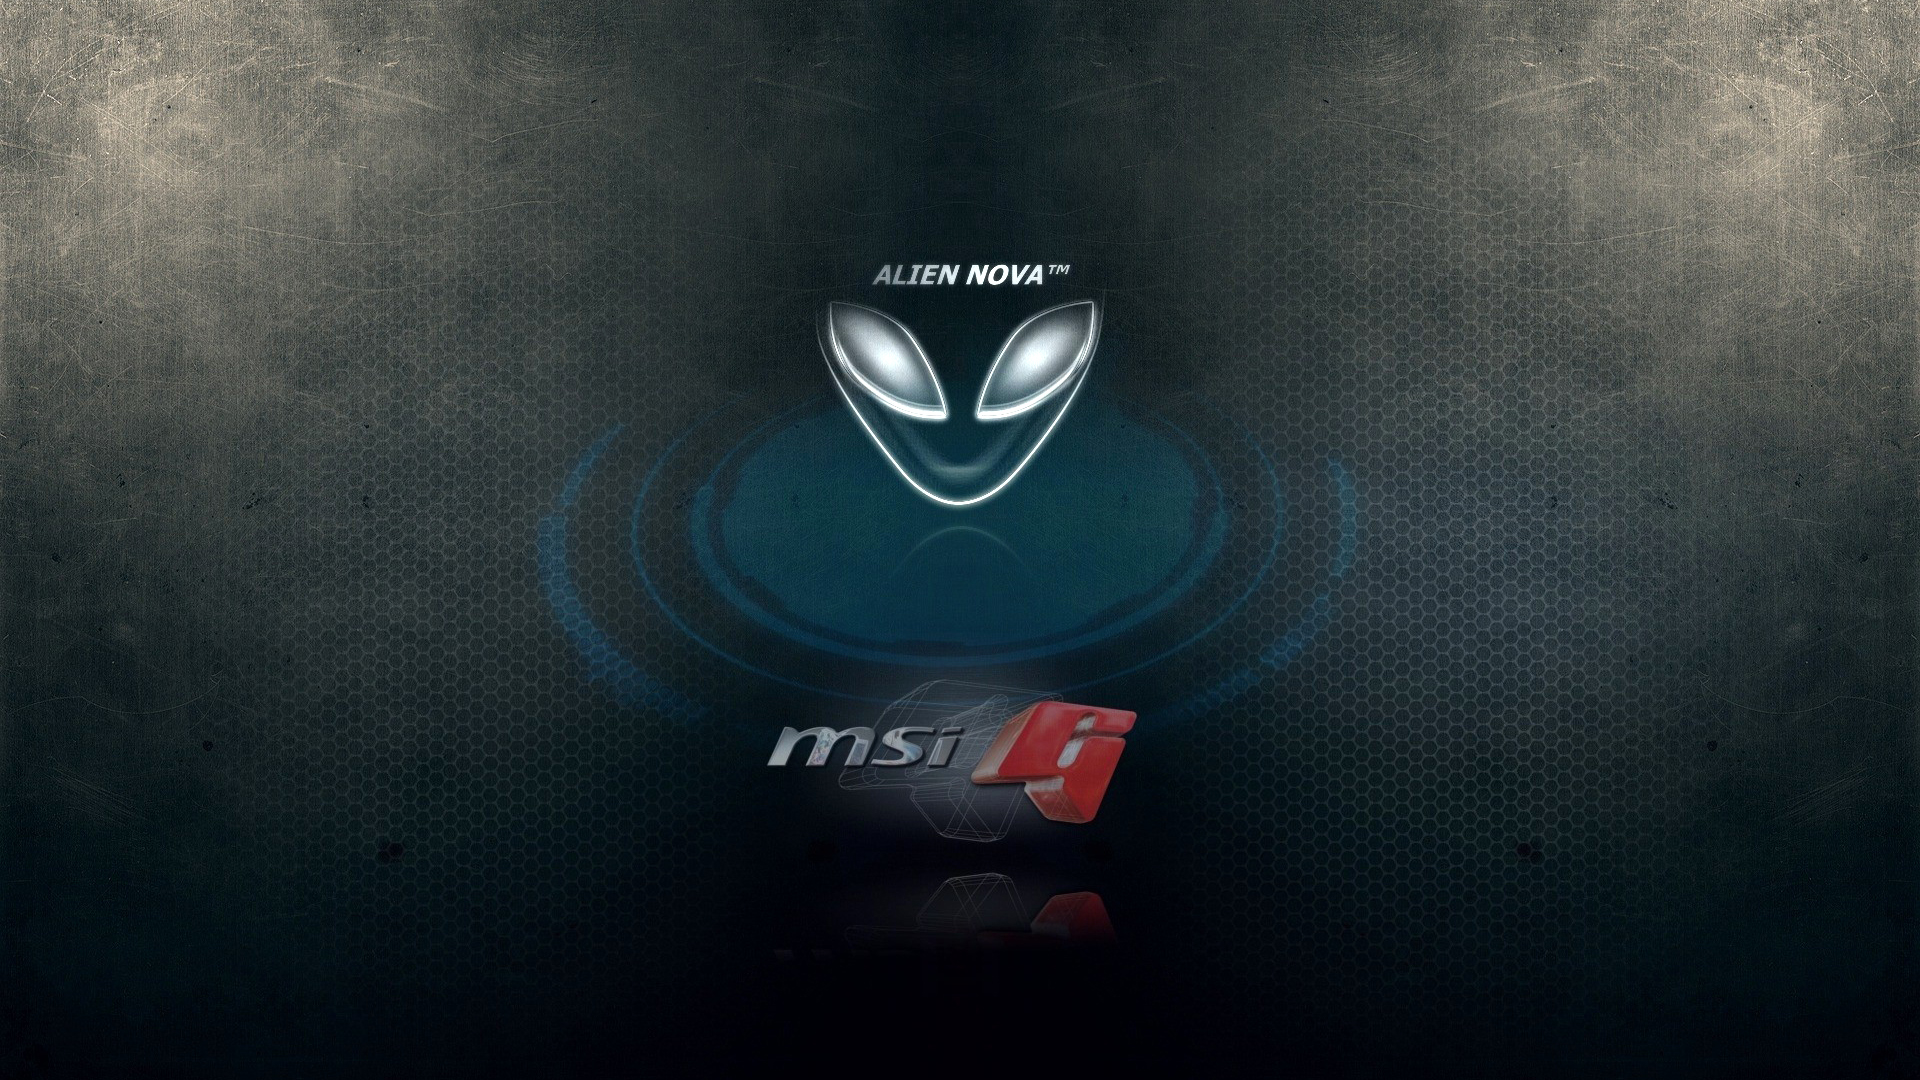 alienware and MSi g logo hd 1920x1080 1080p wallpaper compatible for 1920x1080